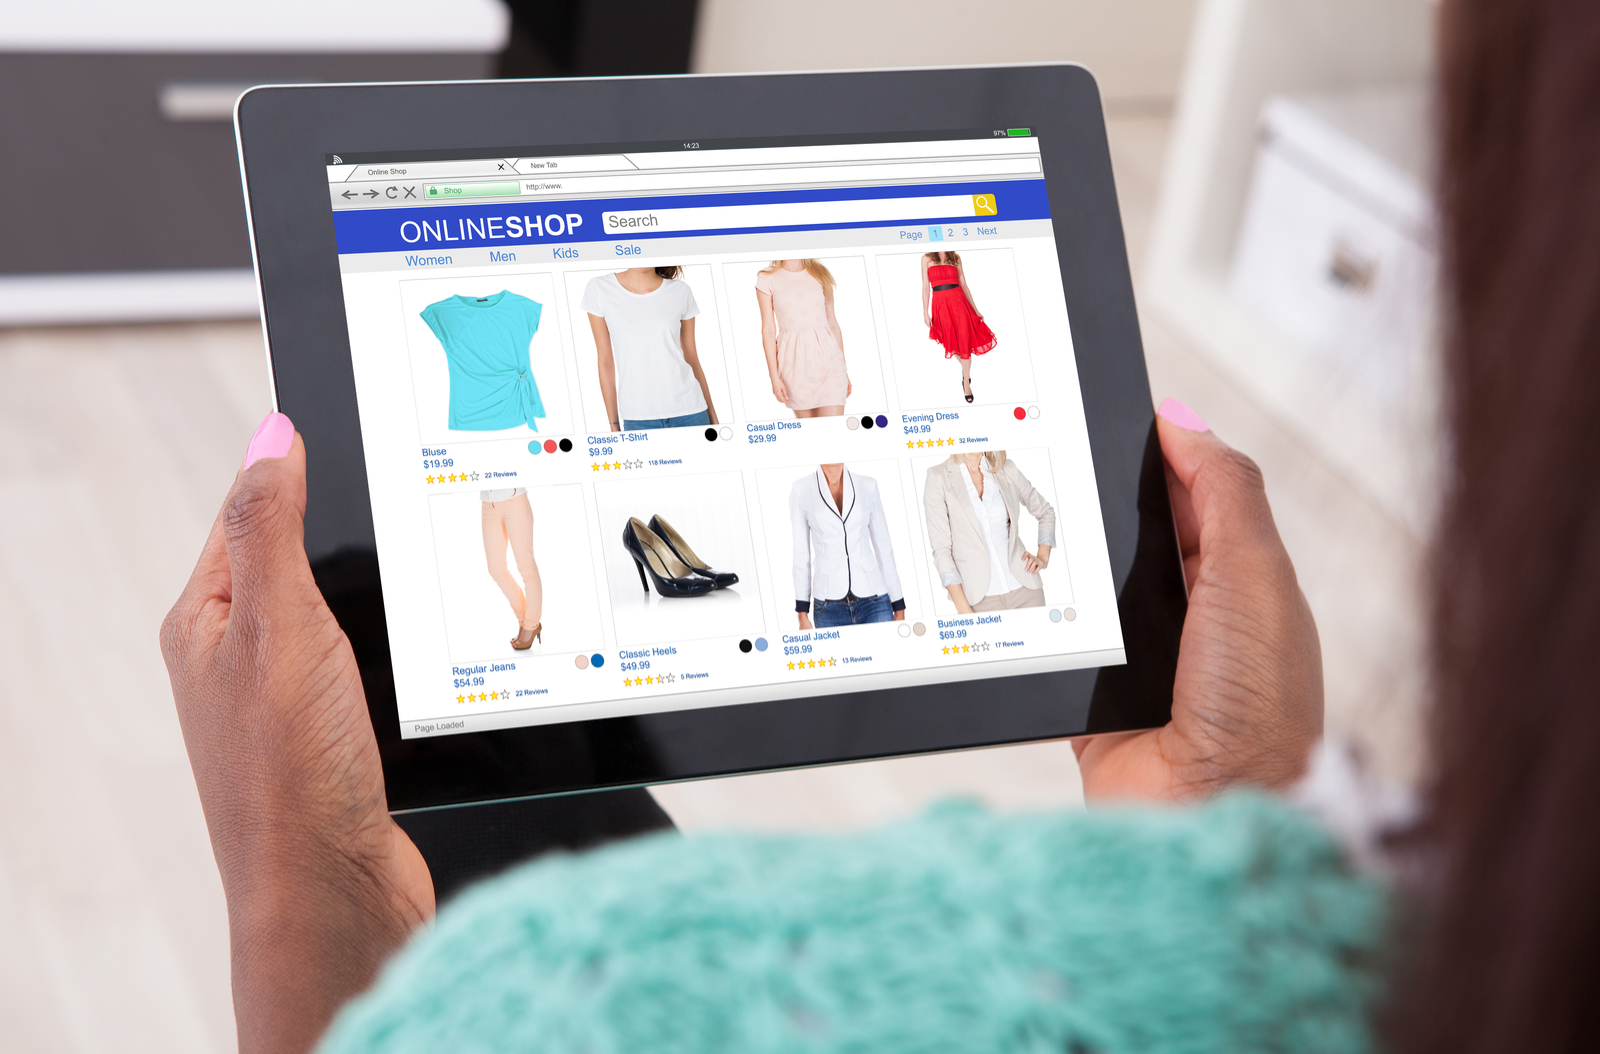 iPad | What is Ecommerce? A Beginner's Guide To The Basics